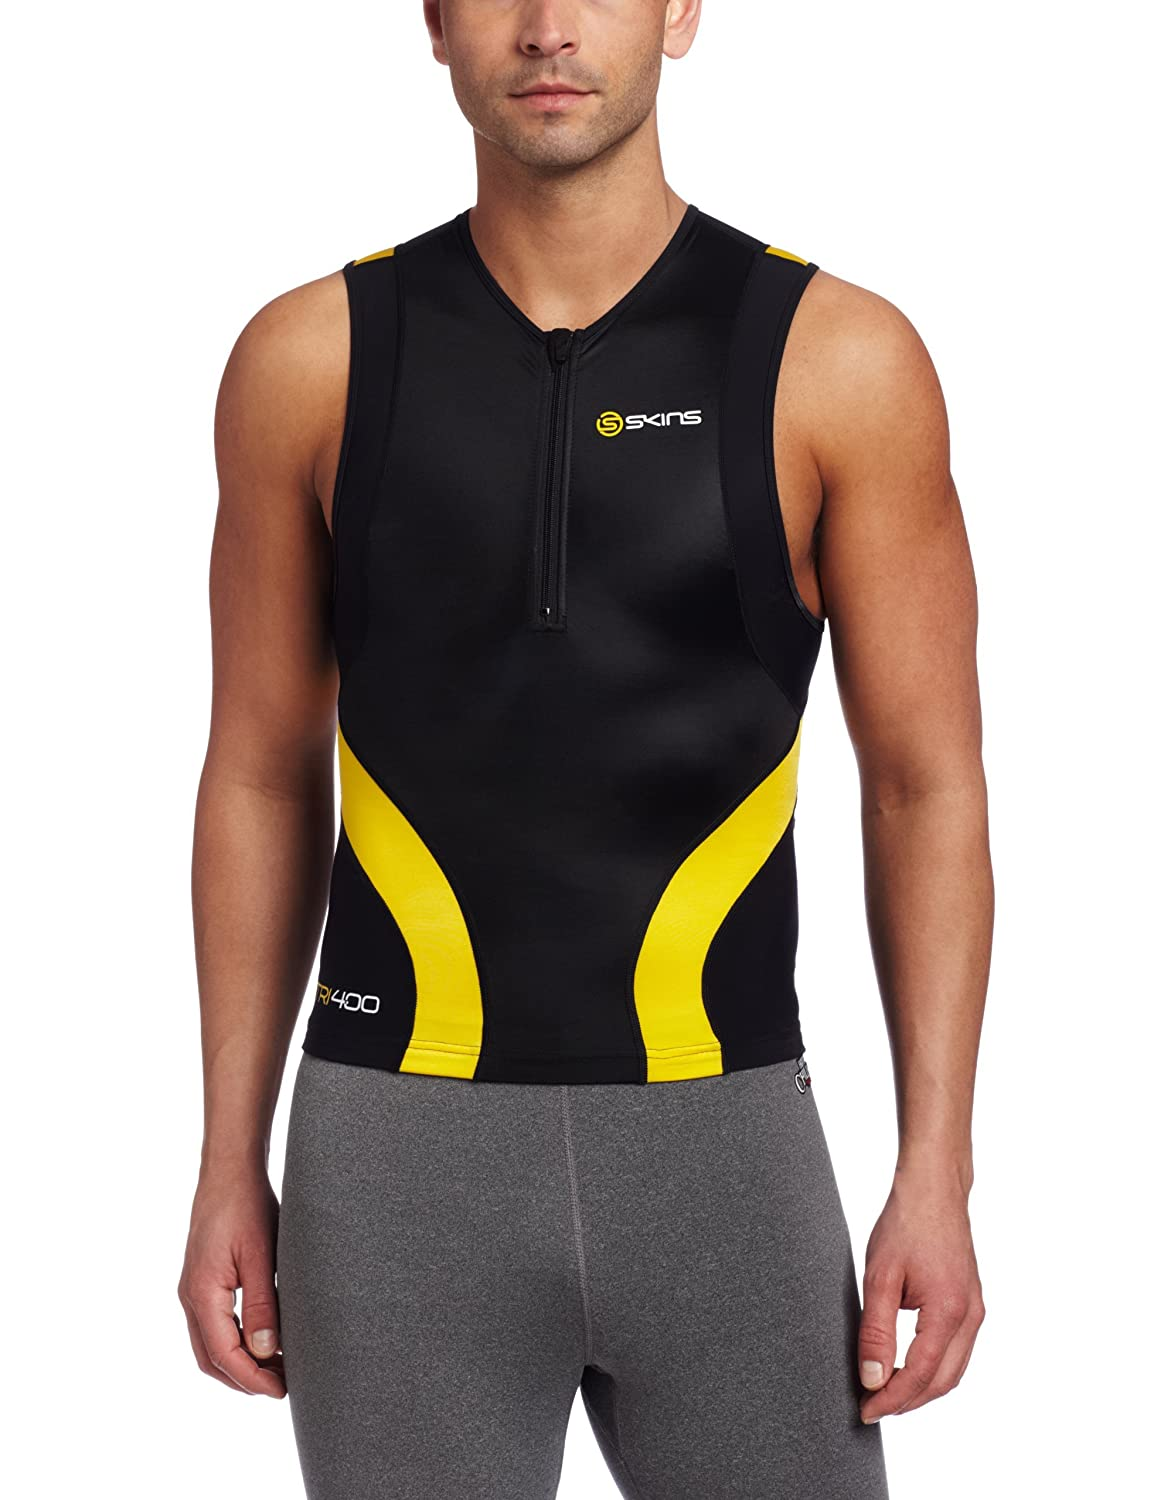 Skins Men's TRI400 Compression Sleeveless Front Zip Top